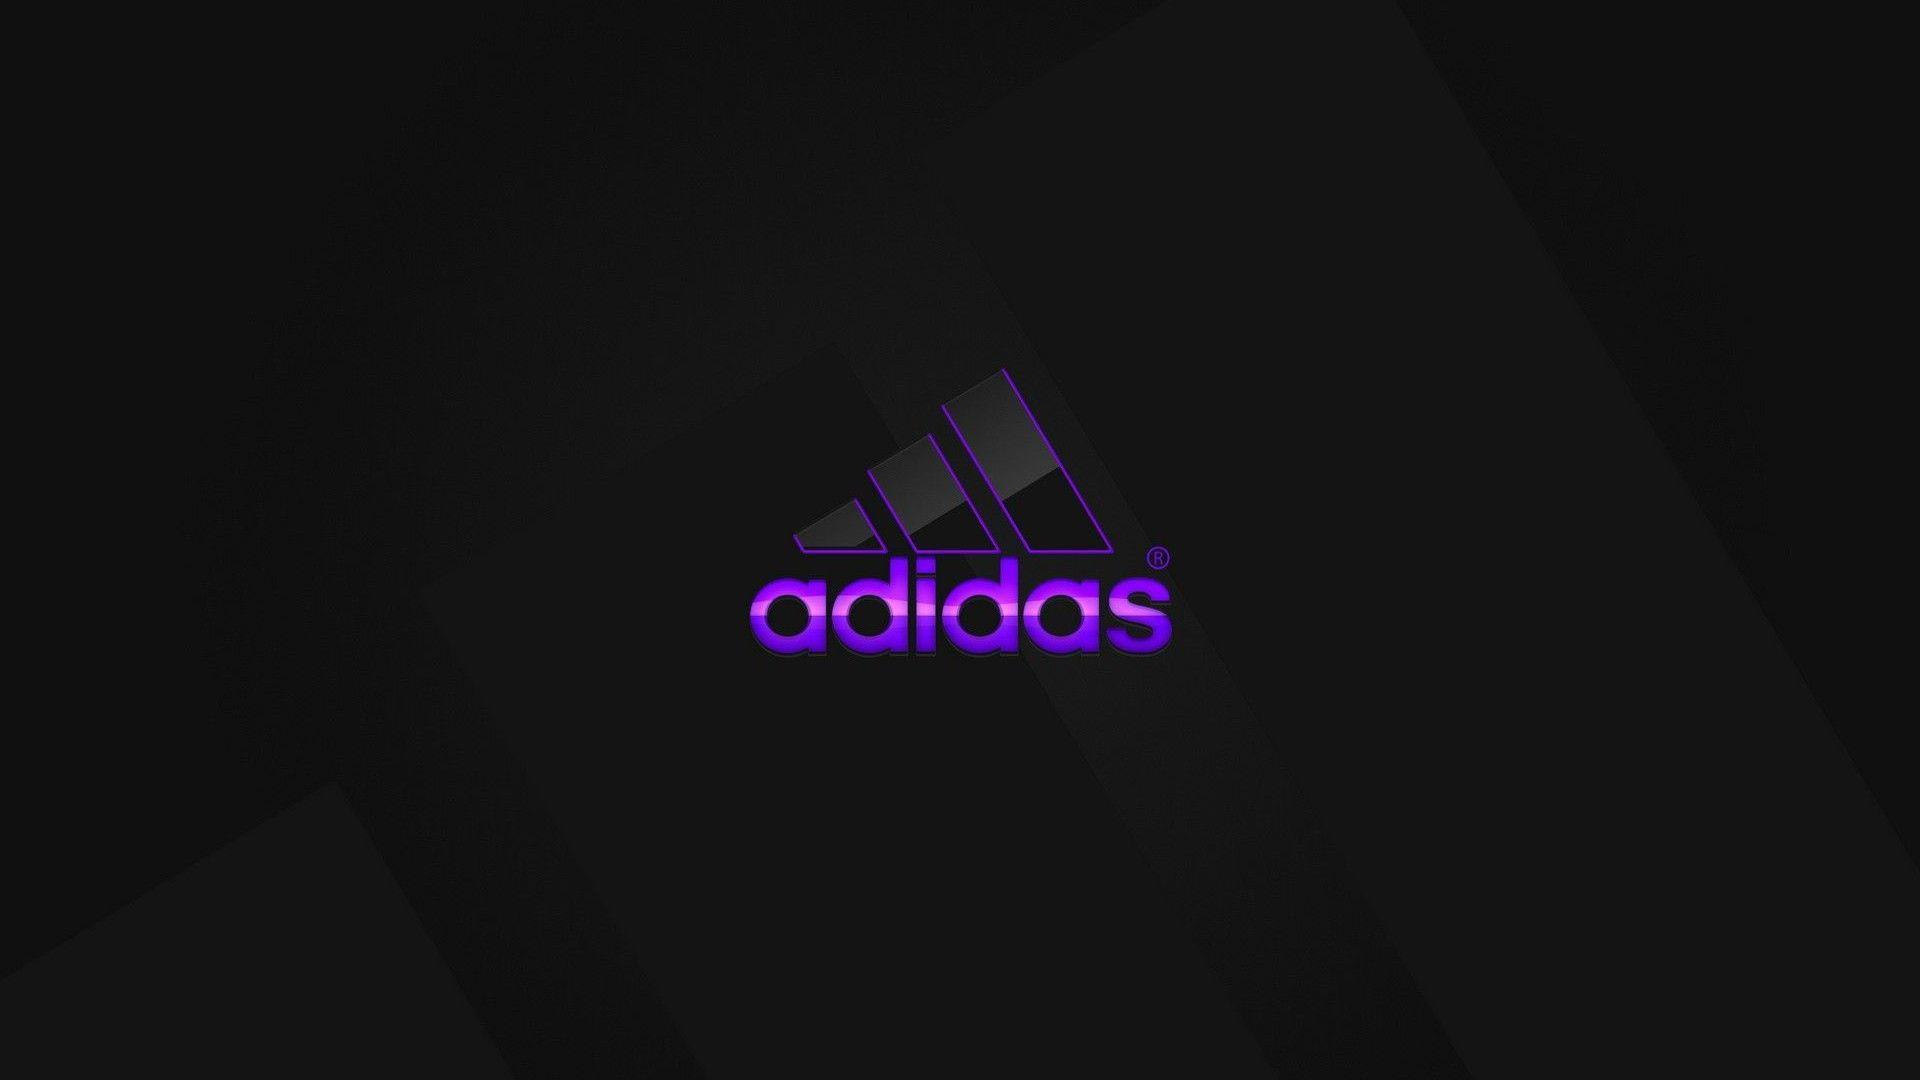 adidas logo wallpapers 2017 wallpaper cave